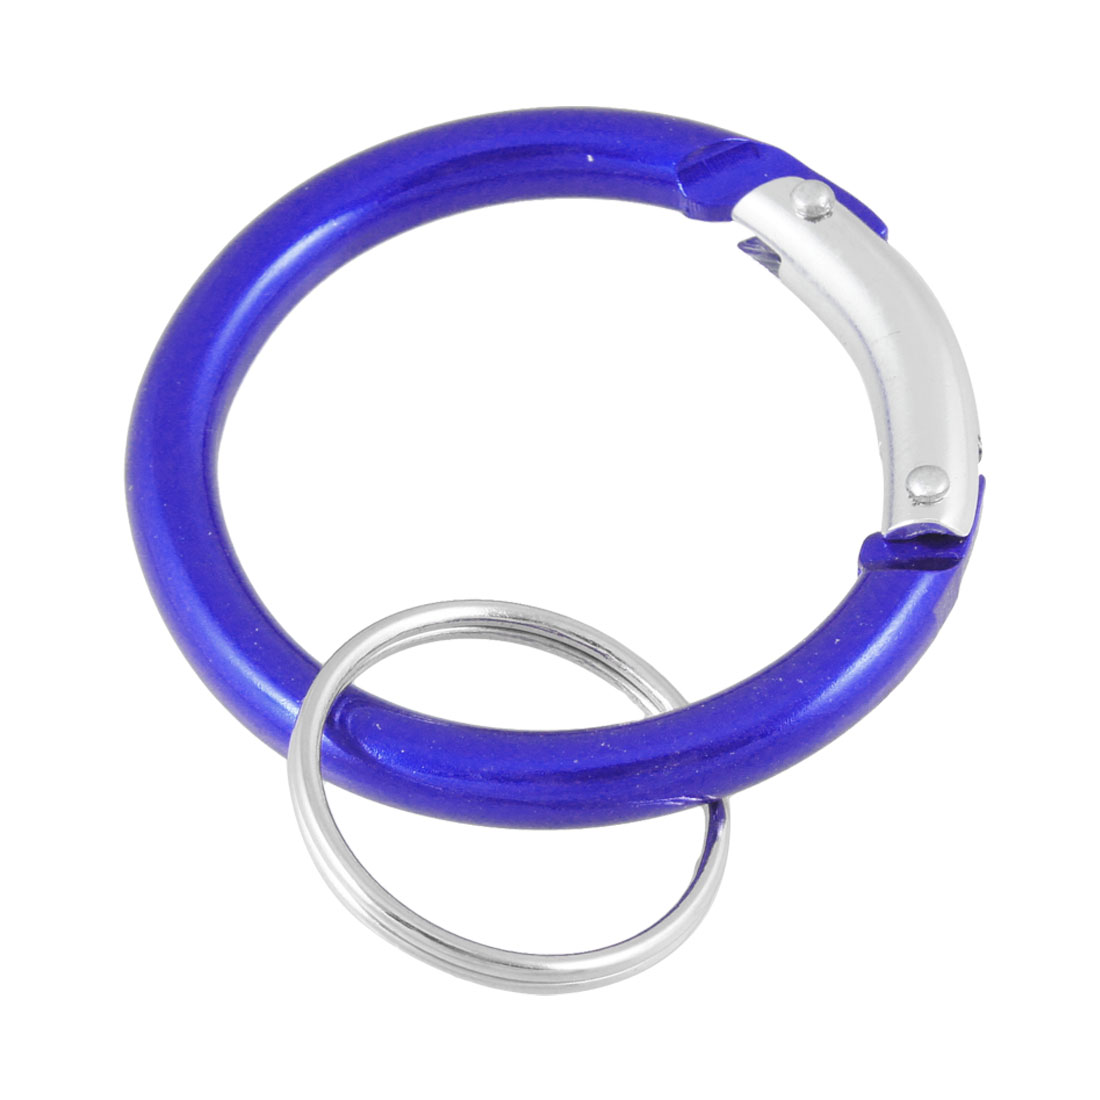 "Keys Holder Royal Blue Spring Loaded Gate Circle Carabiner Key Ring 1"" Dia"